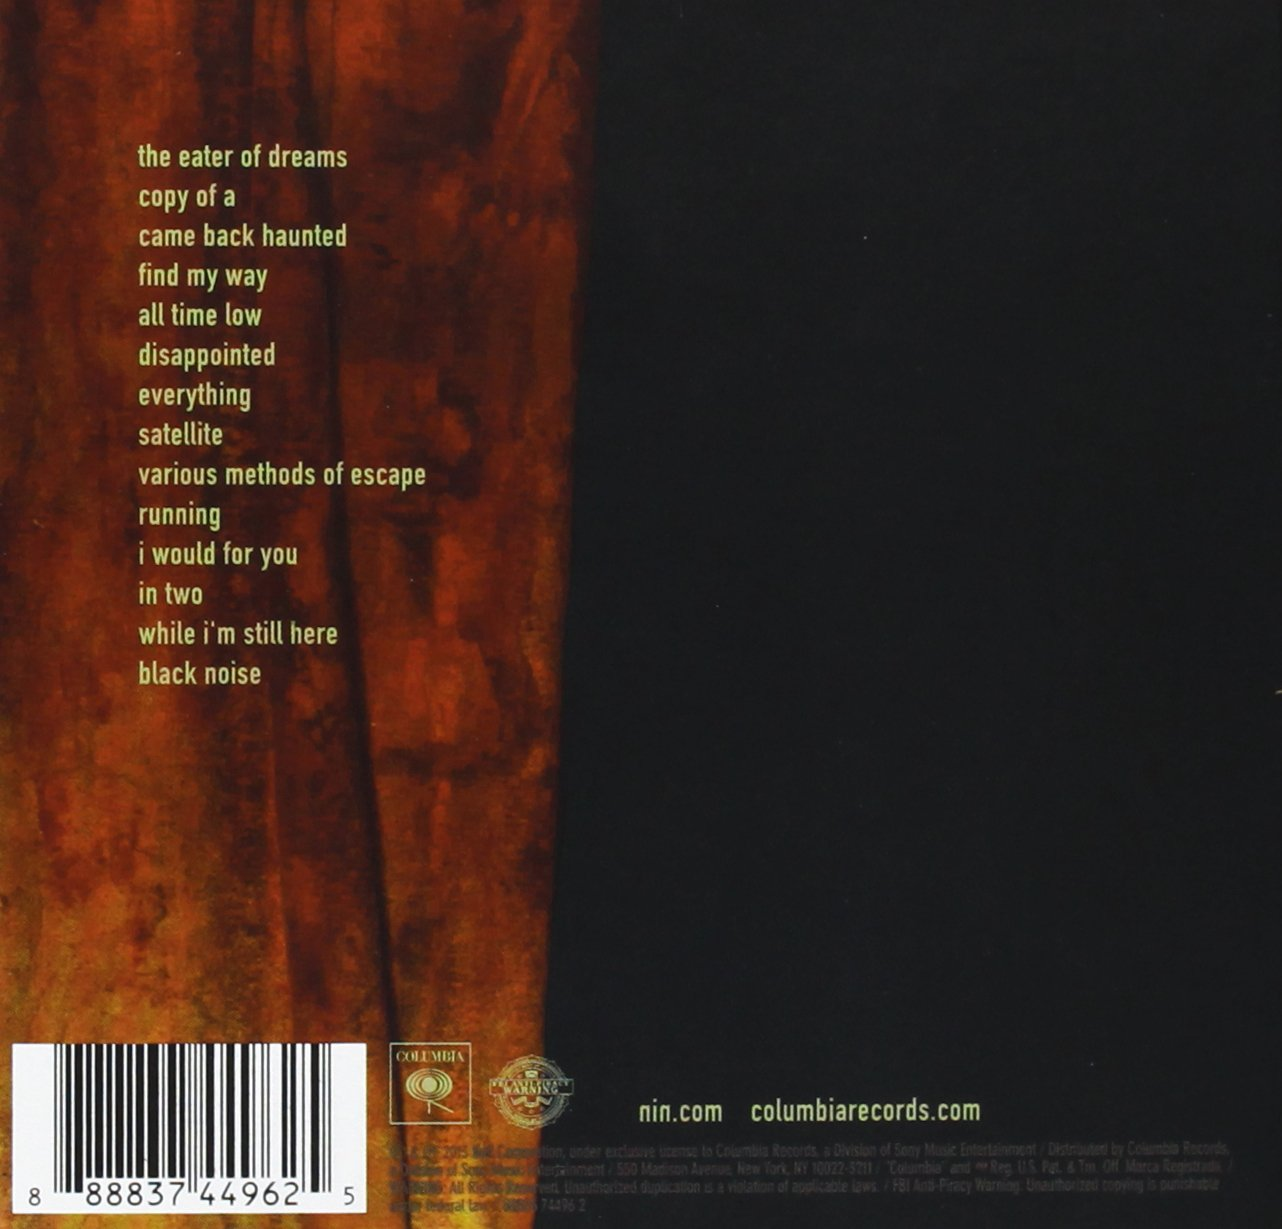 Nine Inch Nails - Hesitation Marks (Deluxe Version) - Amazon.com Music